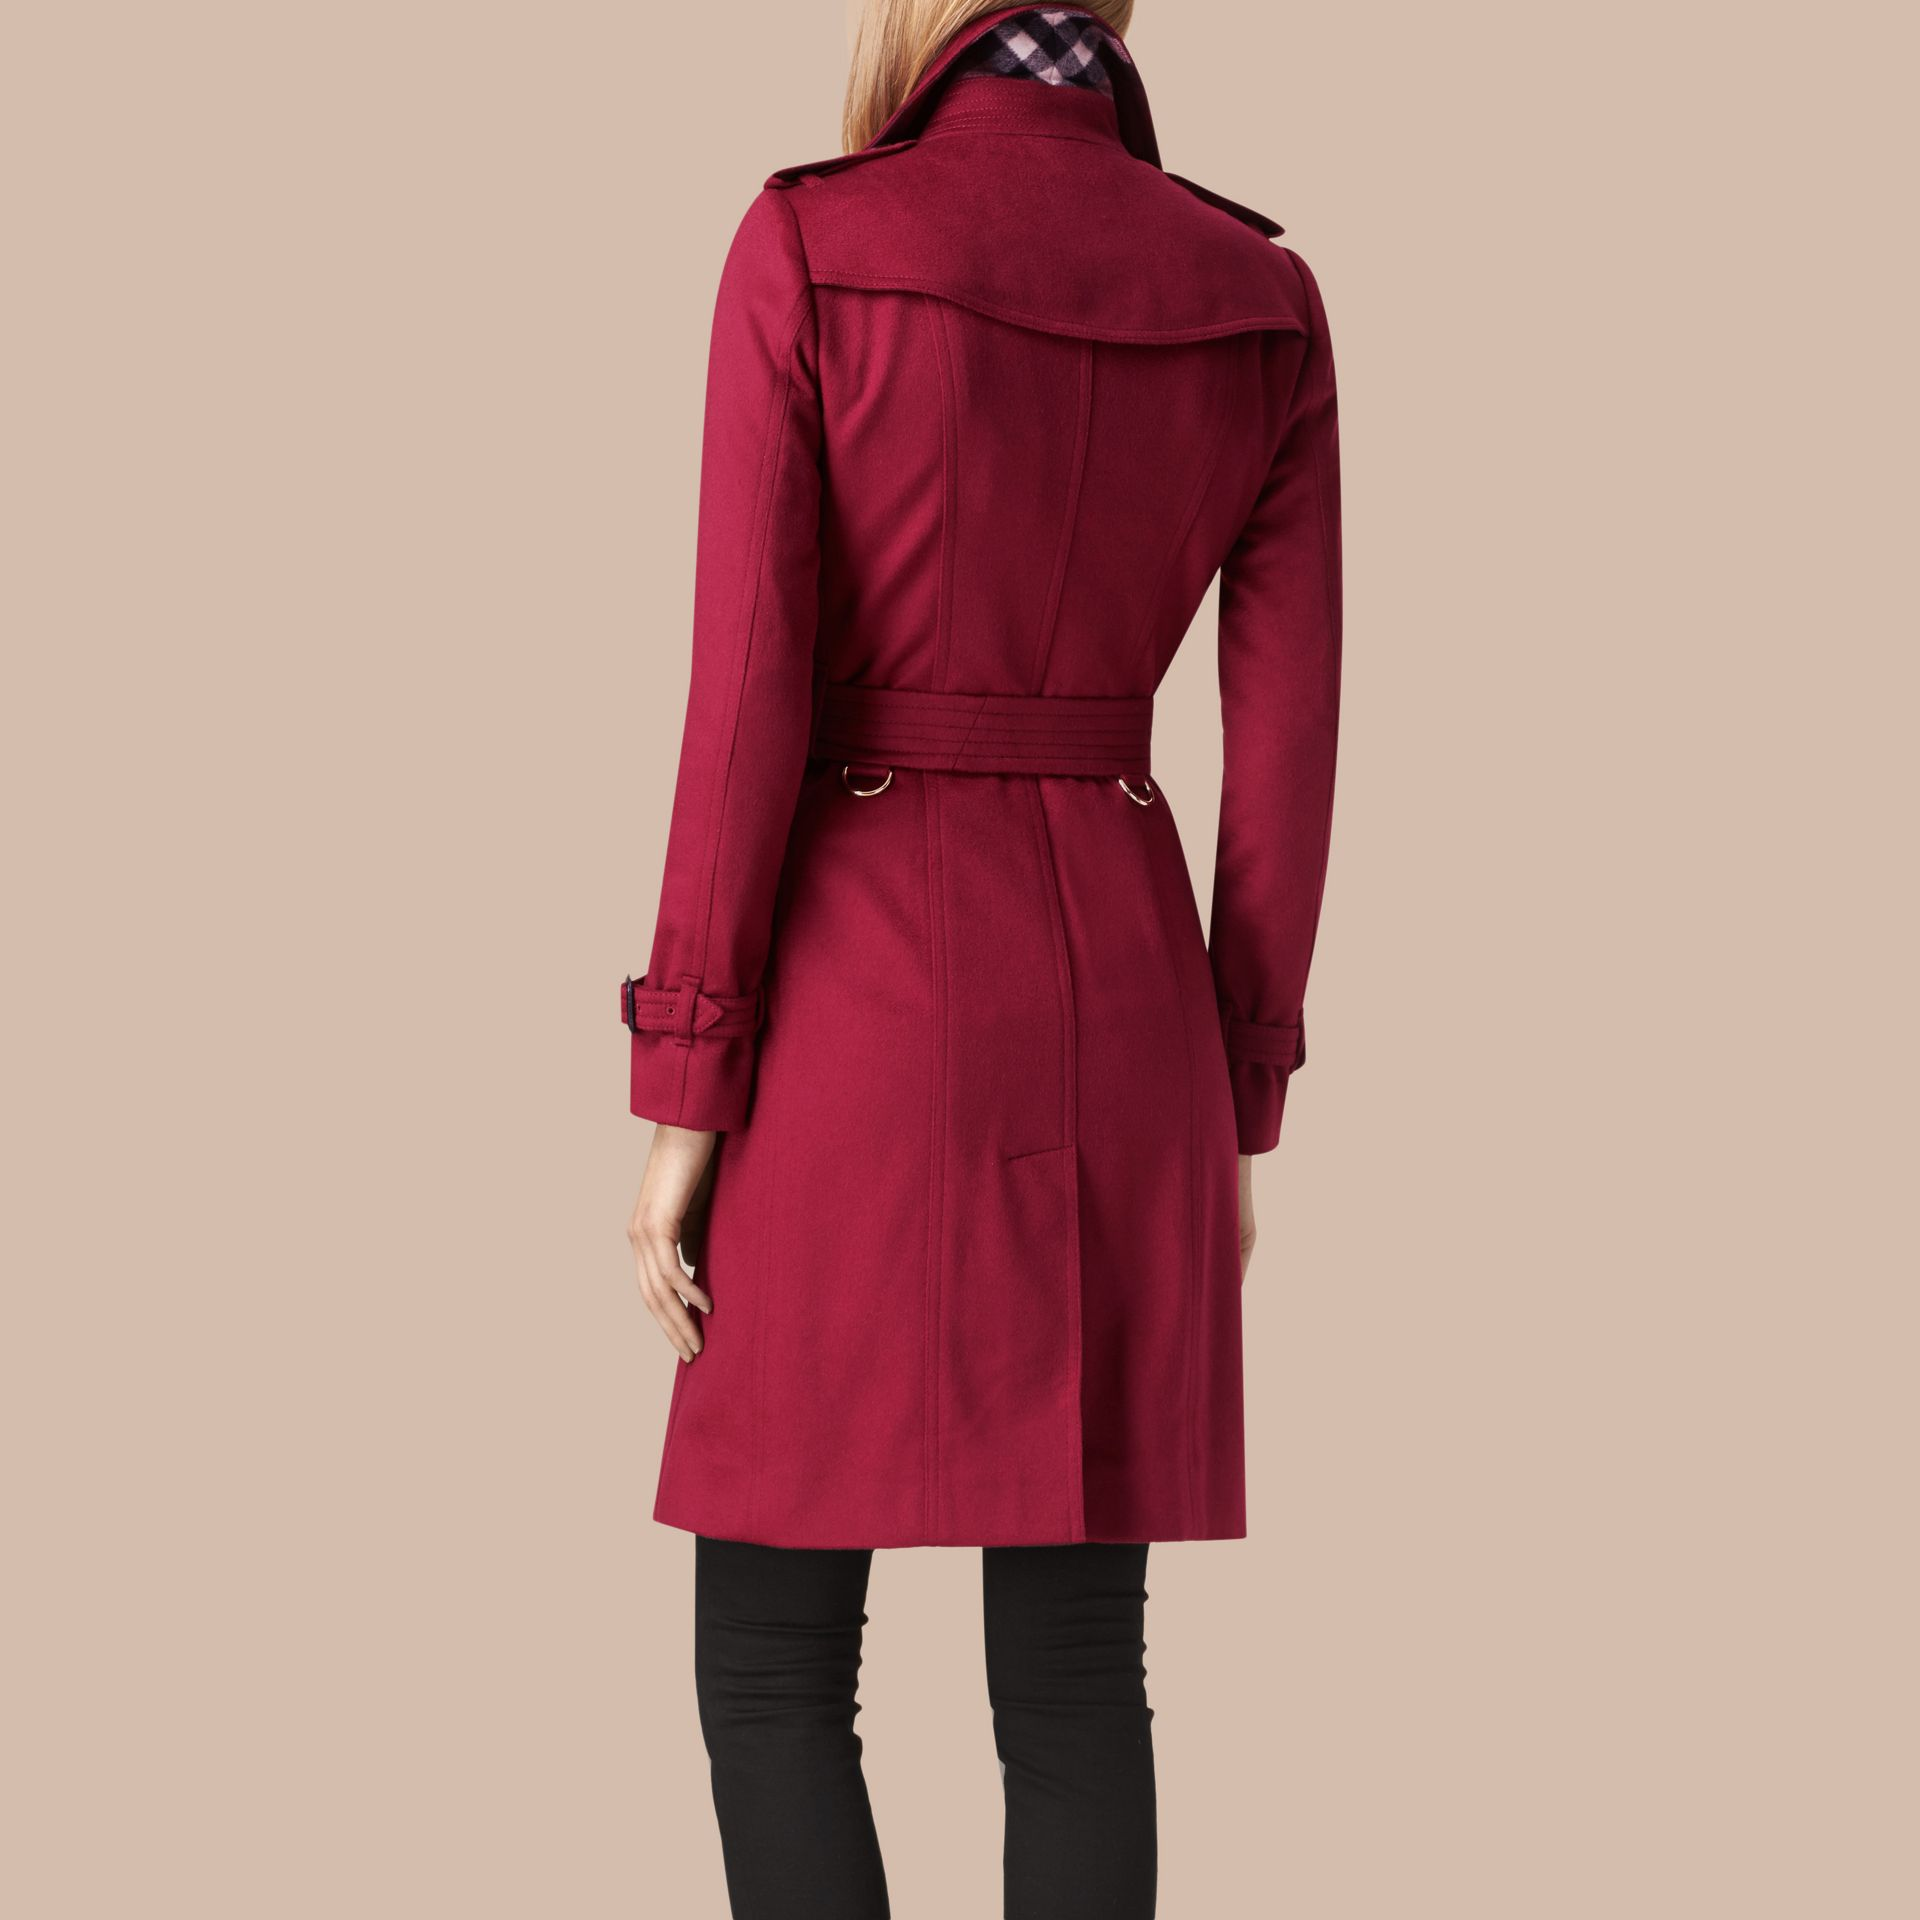 Rose cerise Trench-coat en cachemire de coupe Sandringham Rose Cerise - photo de la galerie 3